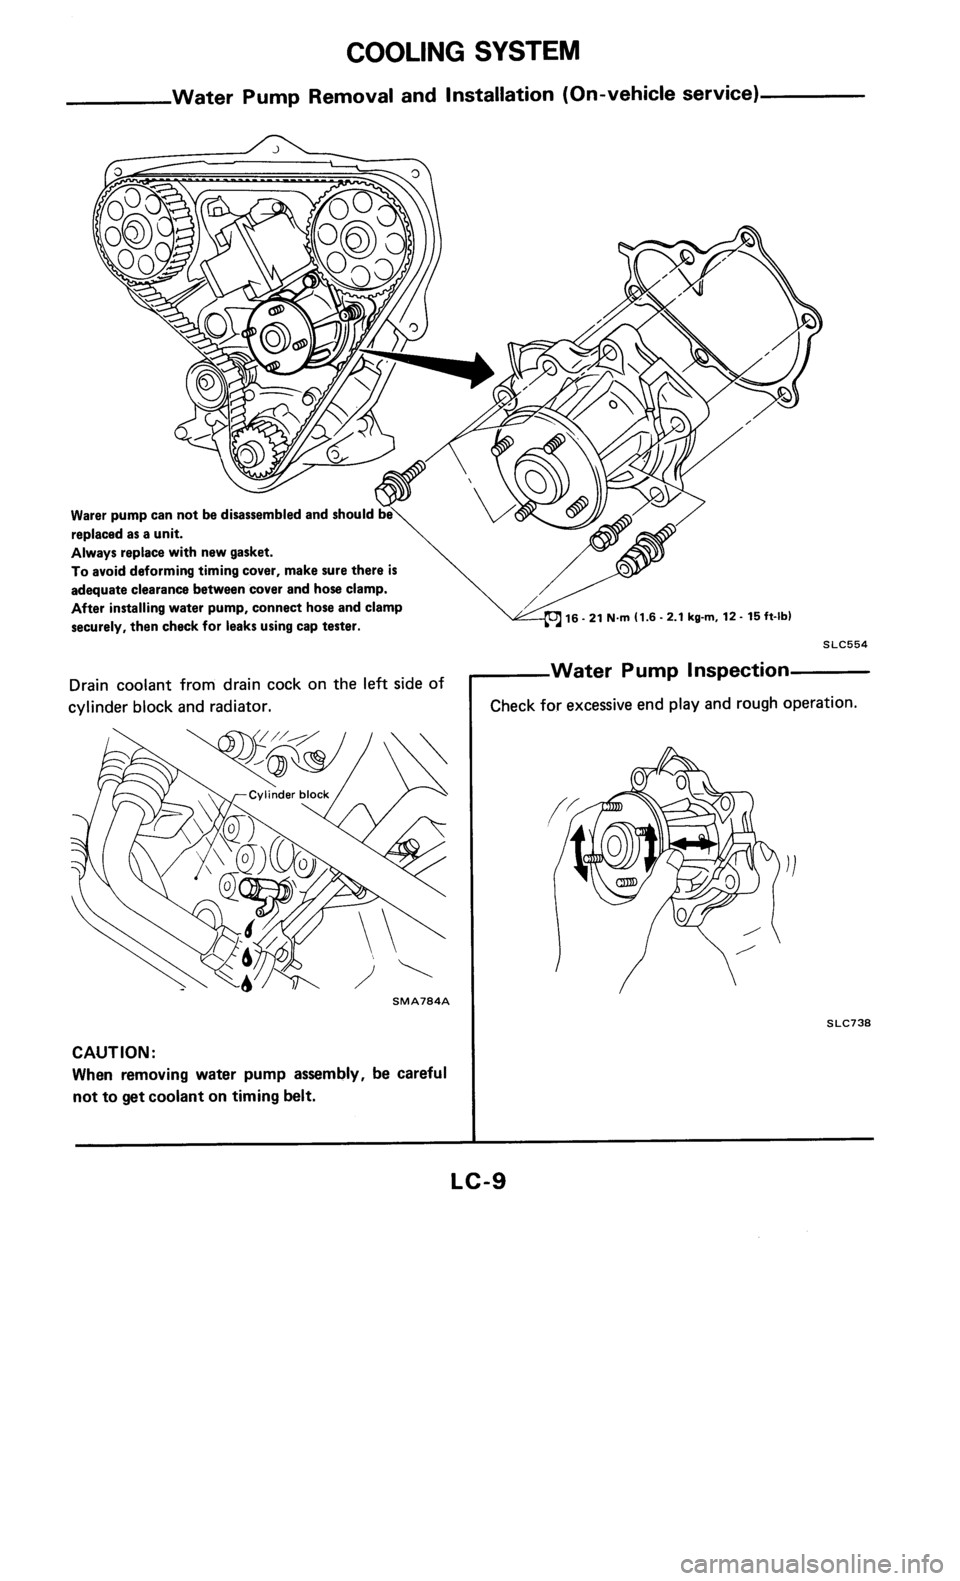 NISSAN 300ZX 1985 Z31 Engine Lubrication And Cooling System Workshop Manual, Page 9